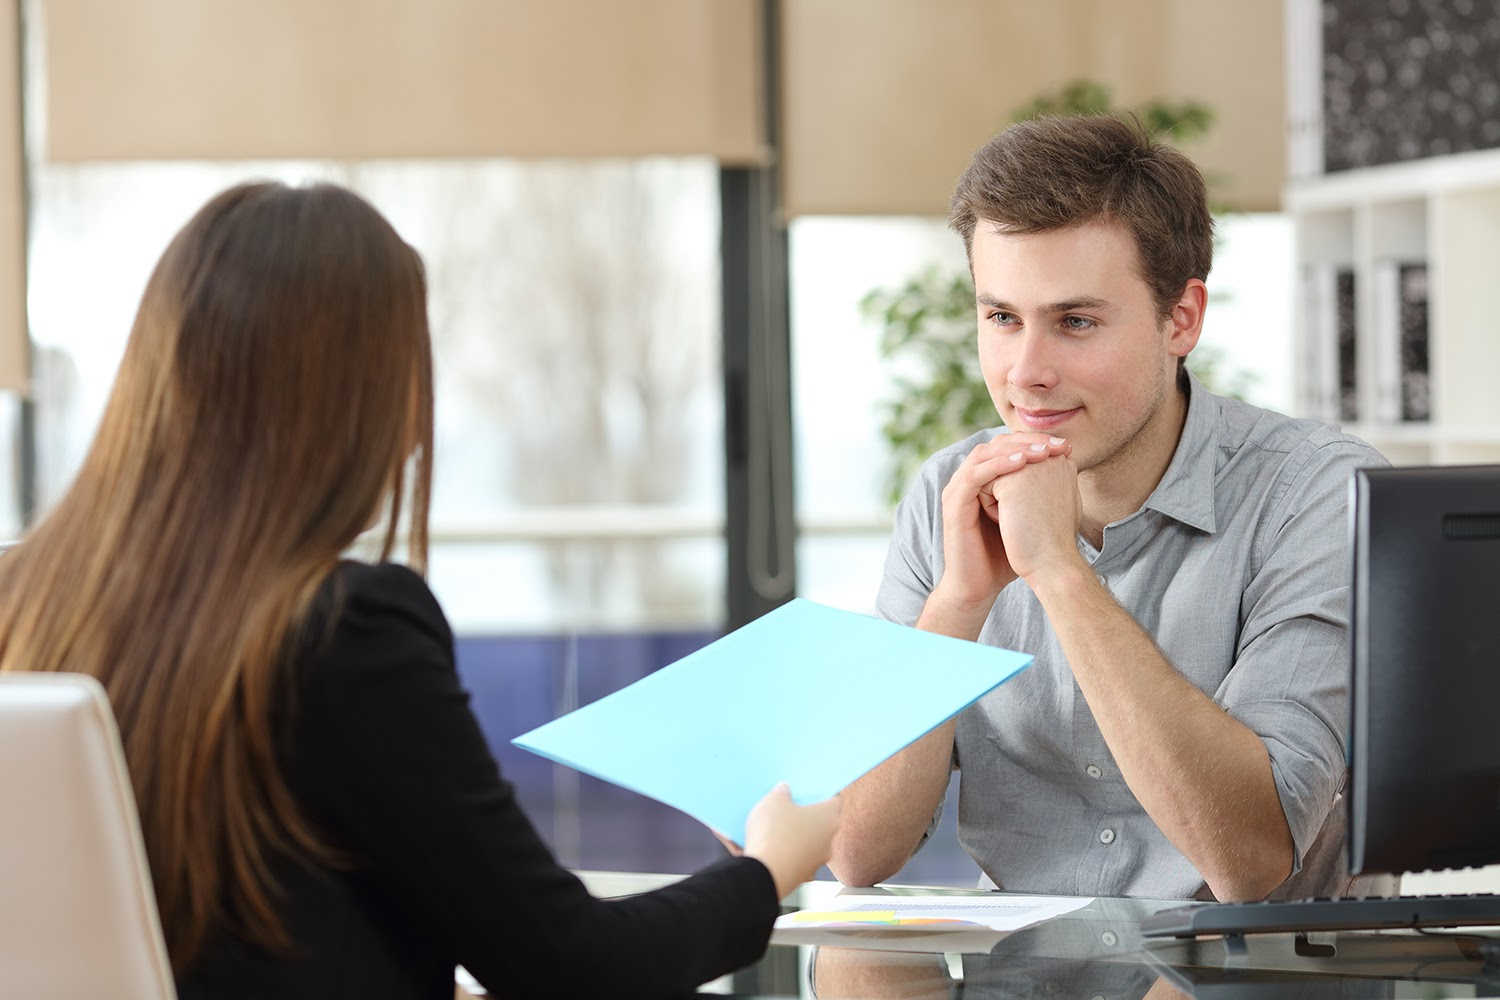 Why hire interns: Businesswoman interviewing a young intern